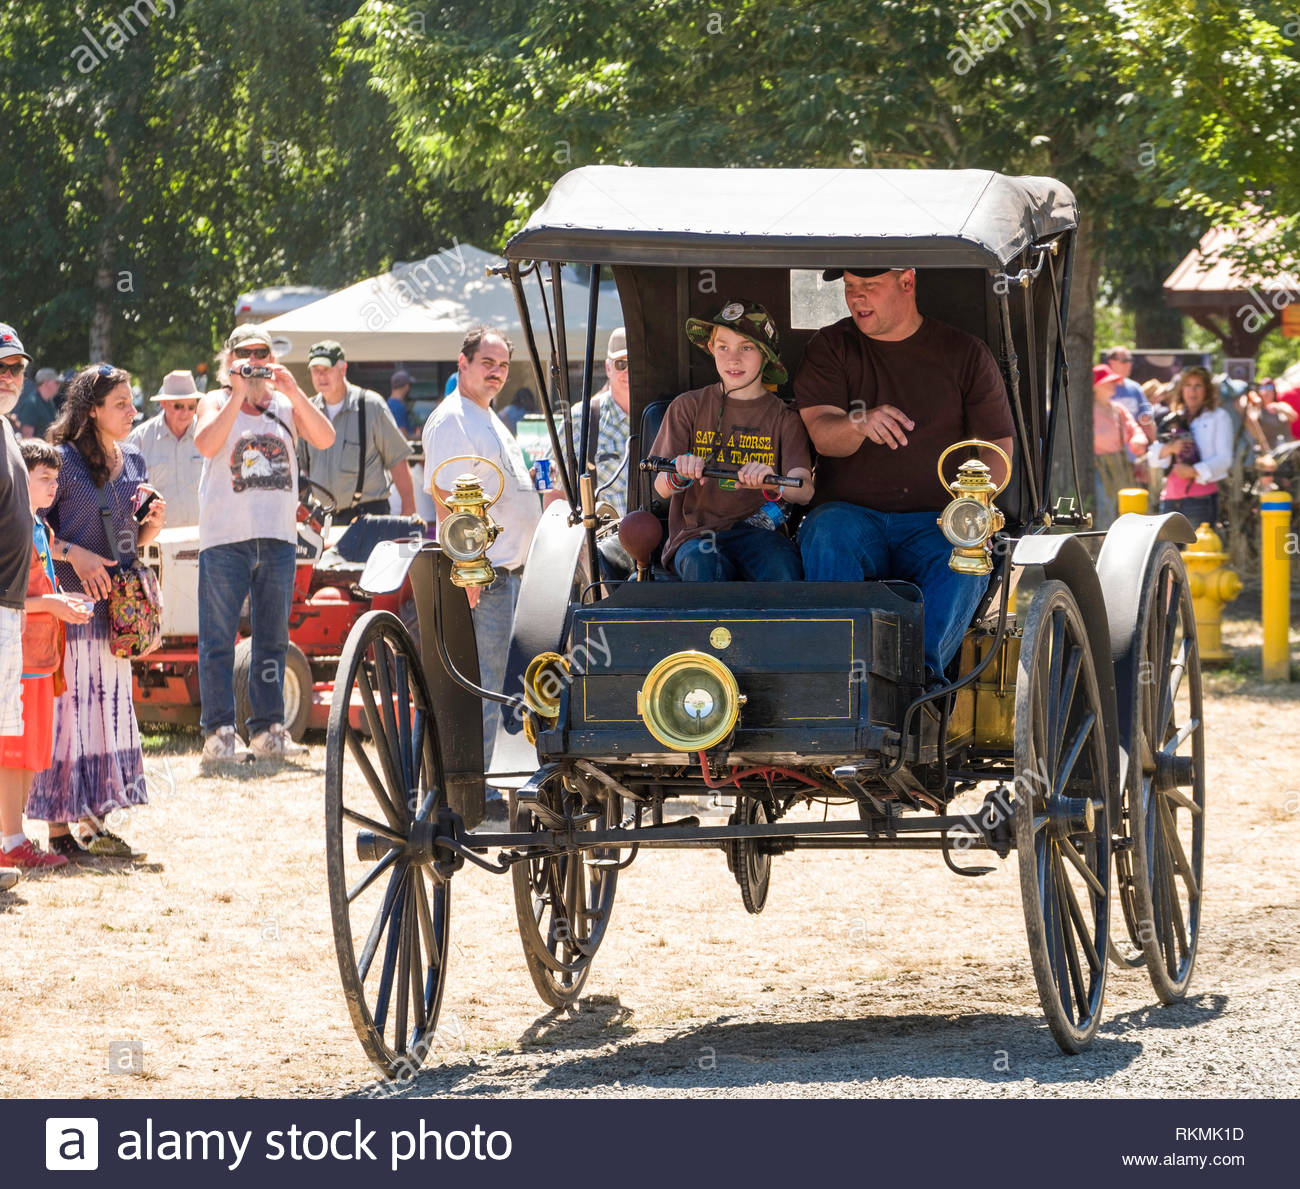 Young boy driving an antique motor vehicle with supervision during the Great Oregon Steam-Up at the Powerland Heritage Park, Salem, Marion County, Ore - Stock Image